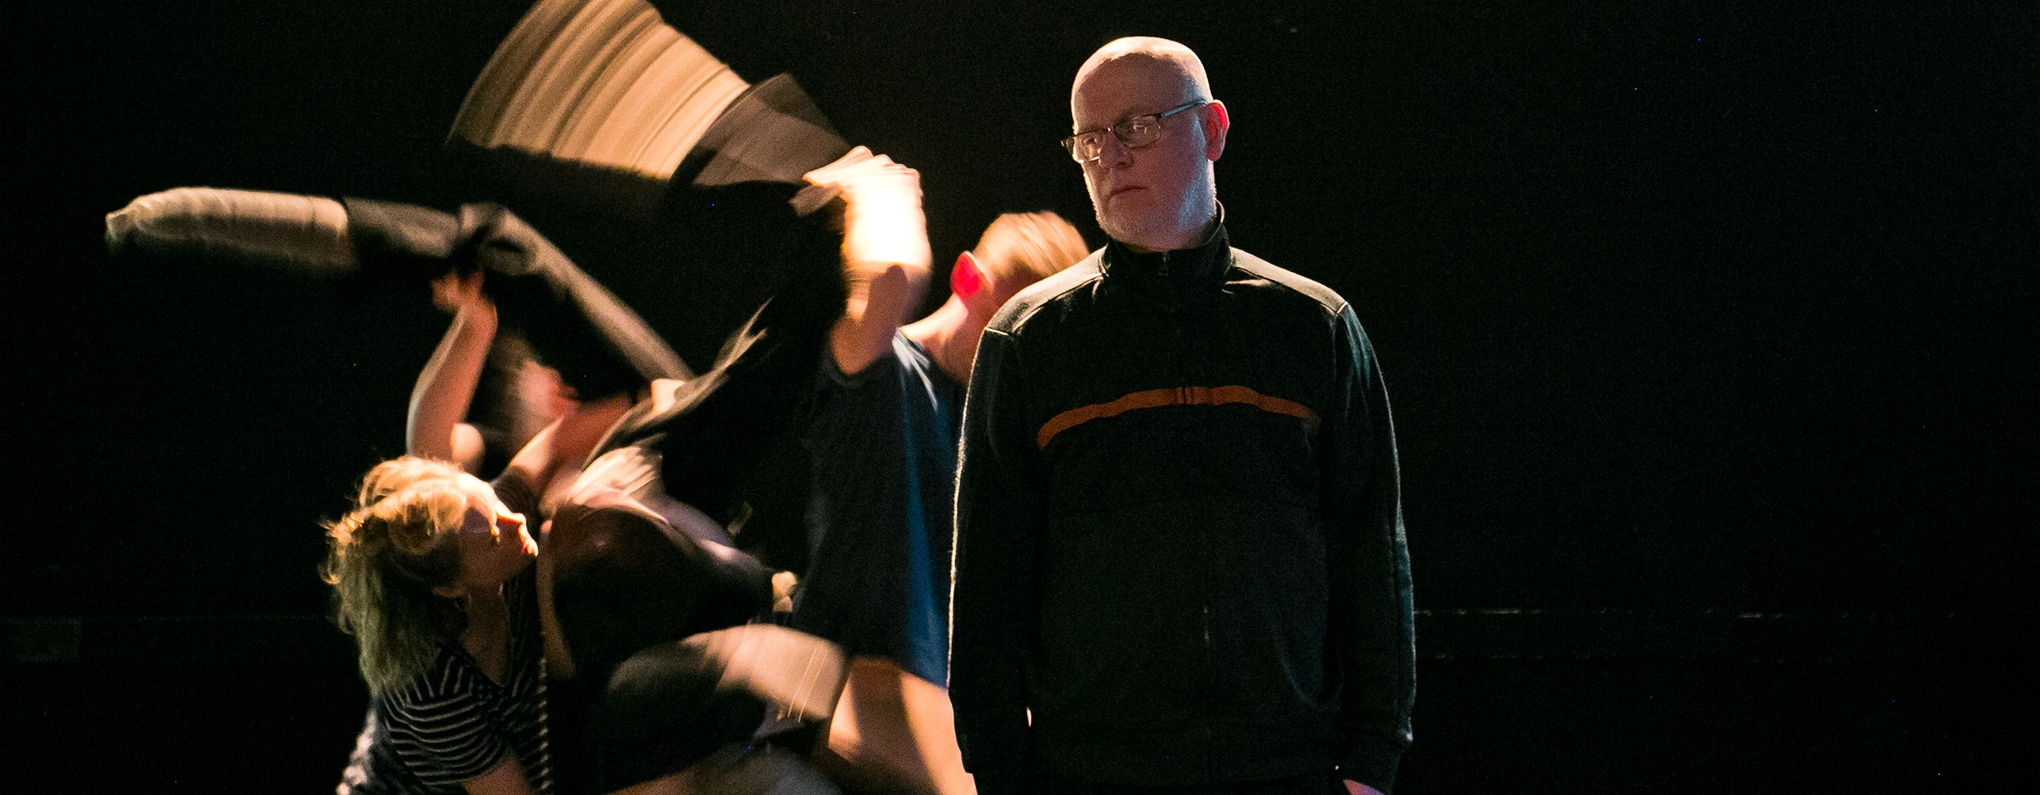 Stationary actor on dark stage with dancers behind.